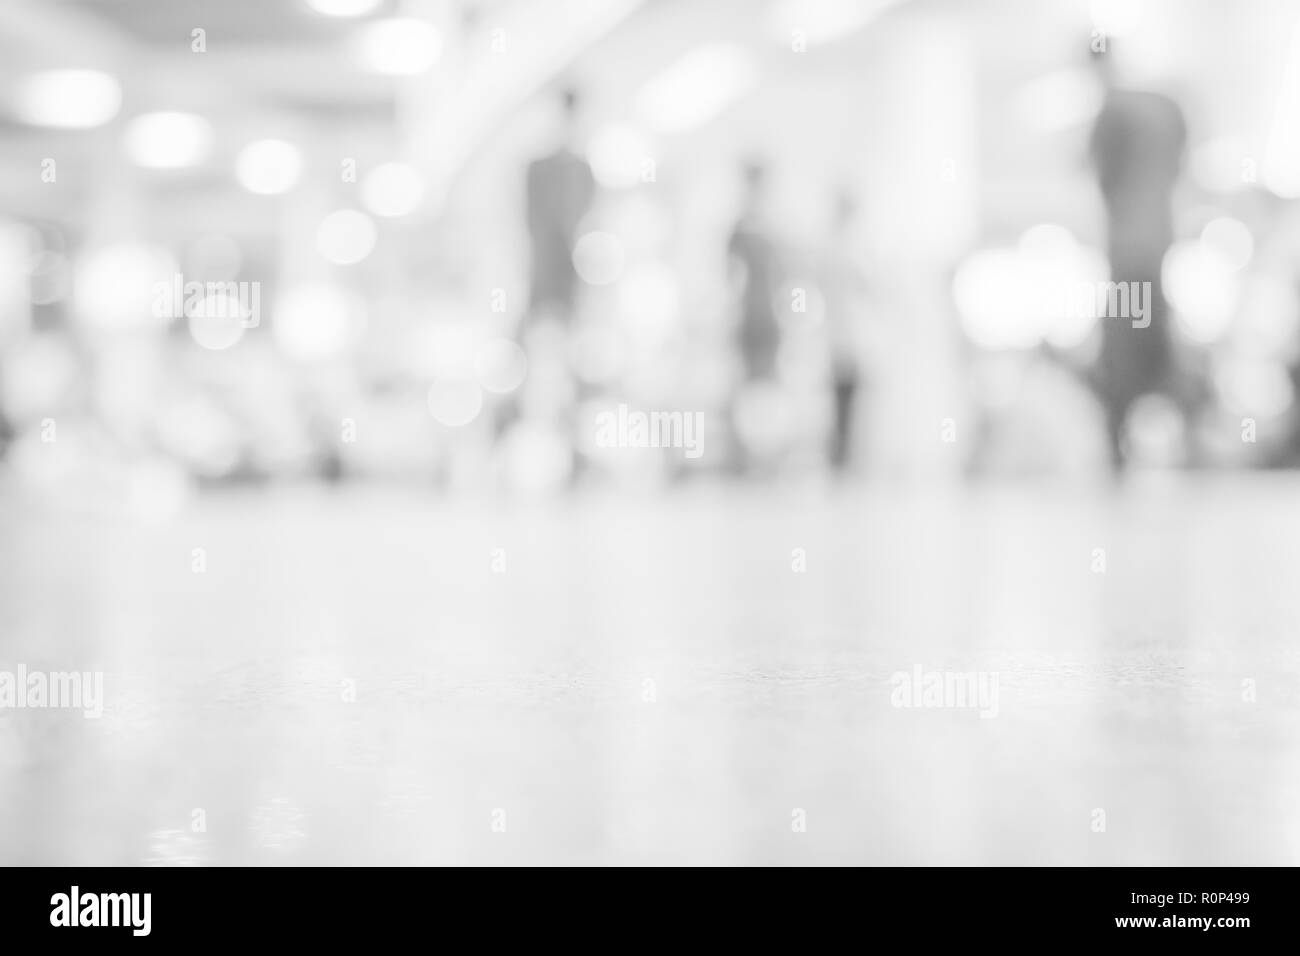 Abstract blurred path way with Blurring people with Blurry Walk Based on Building Technology Success - Stock Image